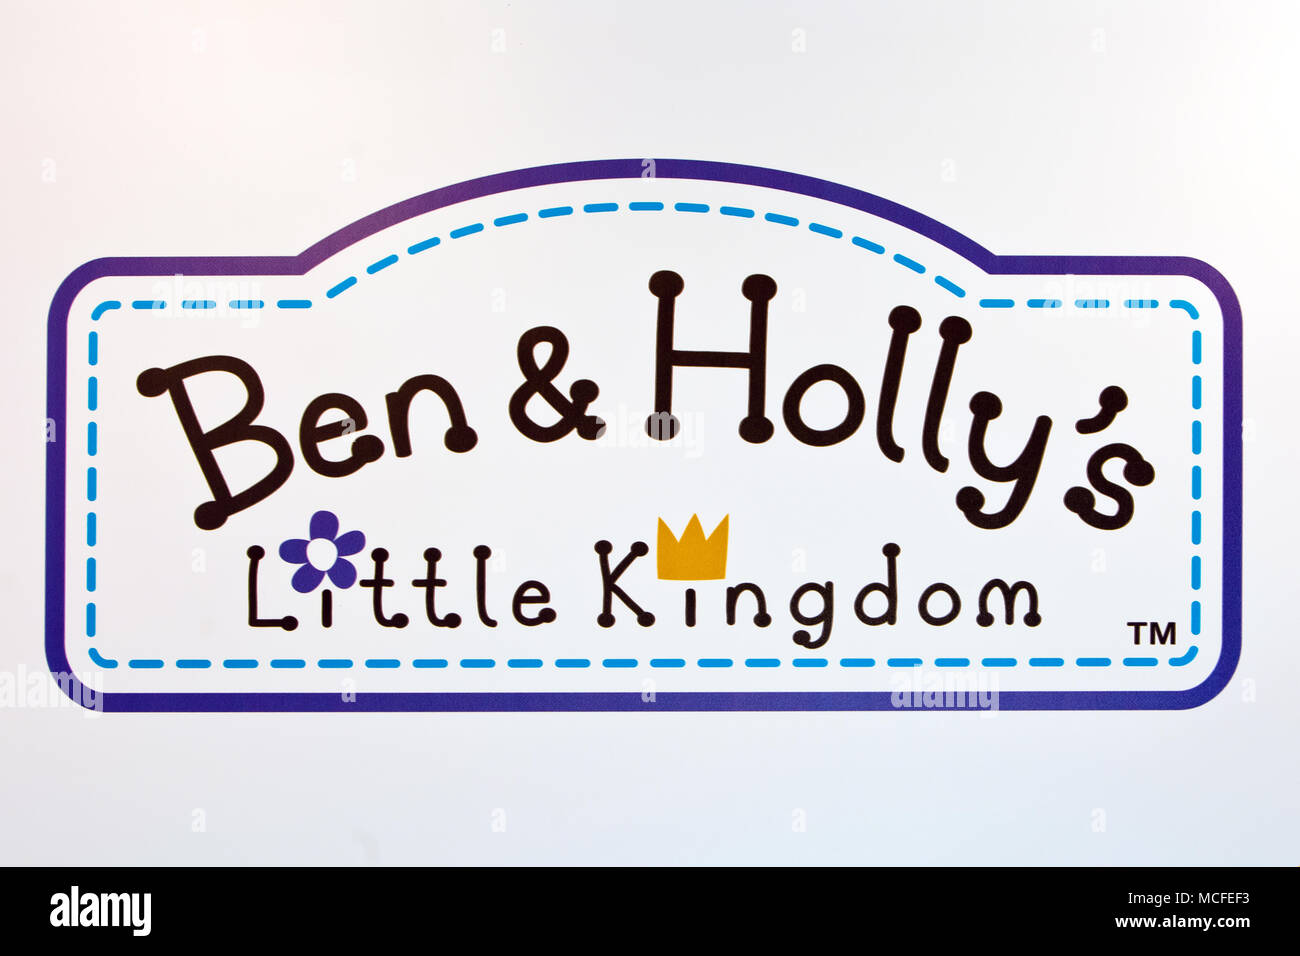 Ben & Holly's logo sign printed on banner. Ben & Holly's Little Kingdom is a British animated preschool television series - Stock Image